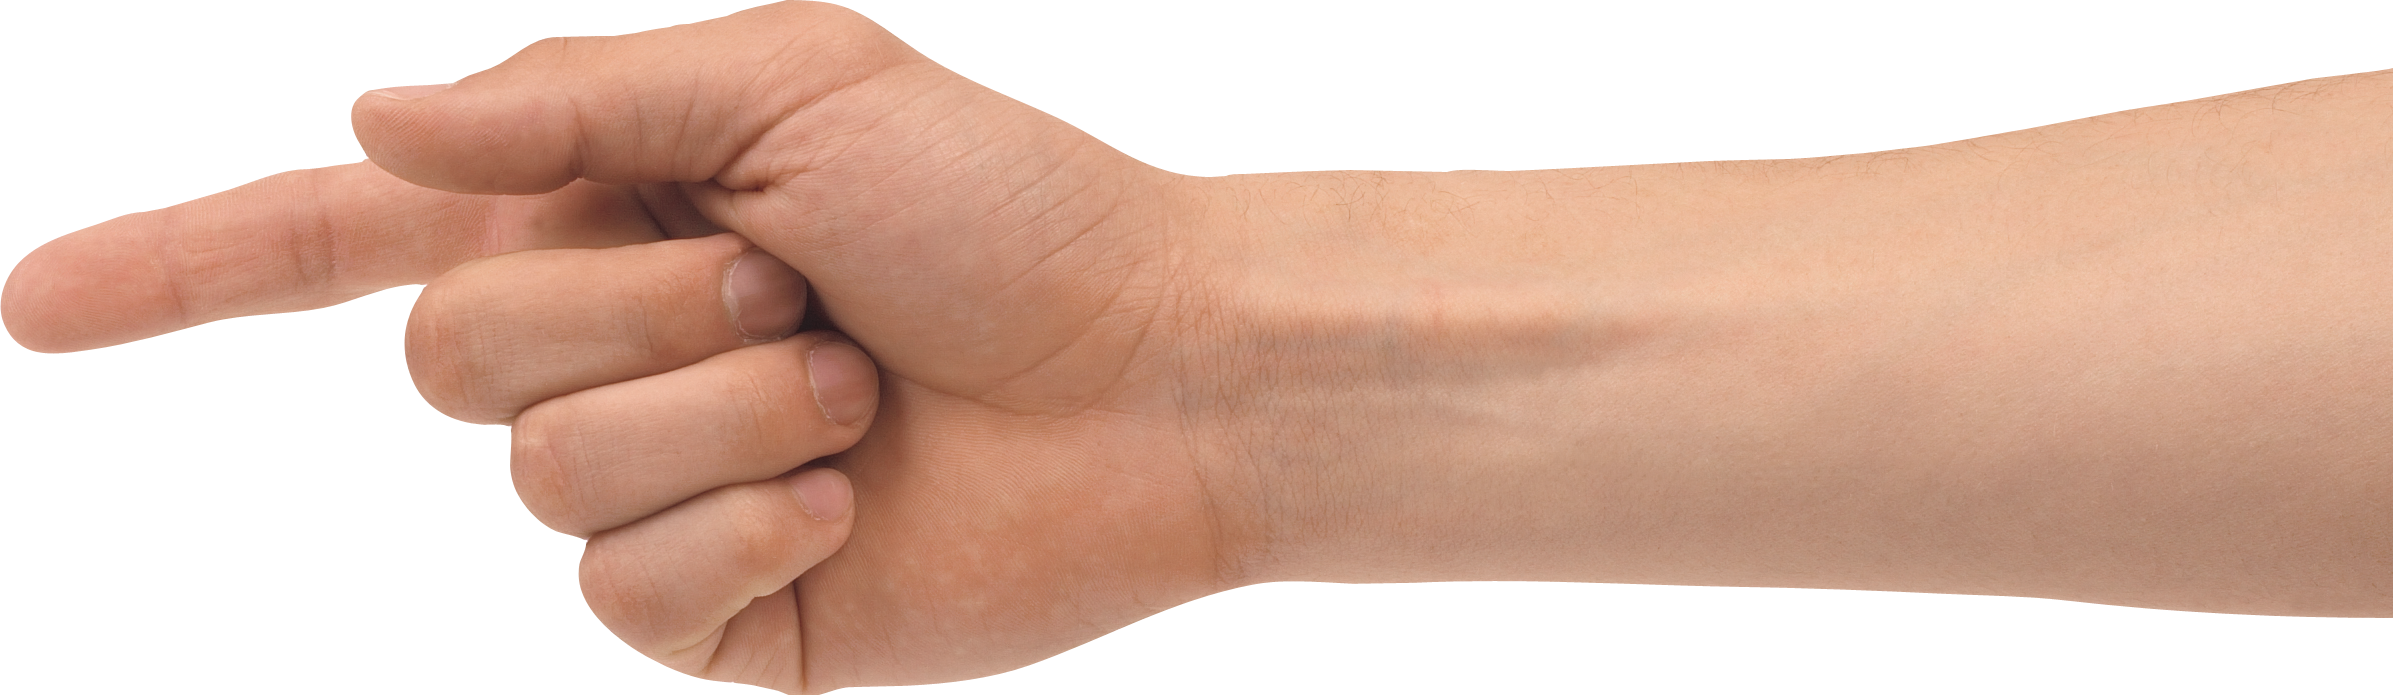 hand and arm png